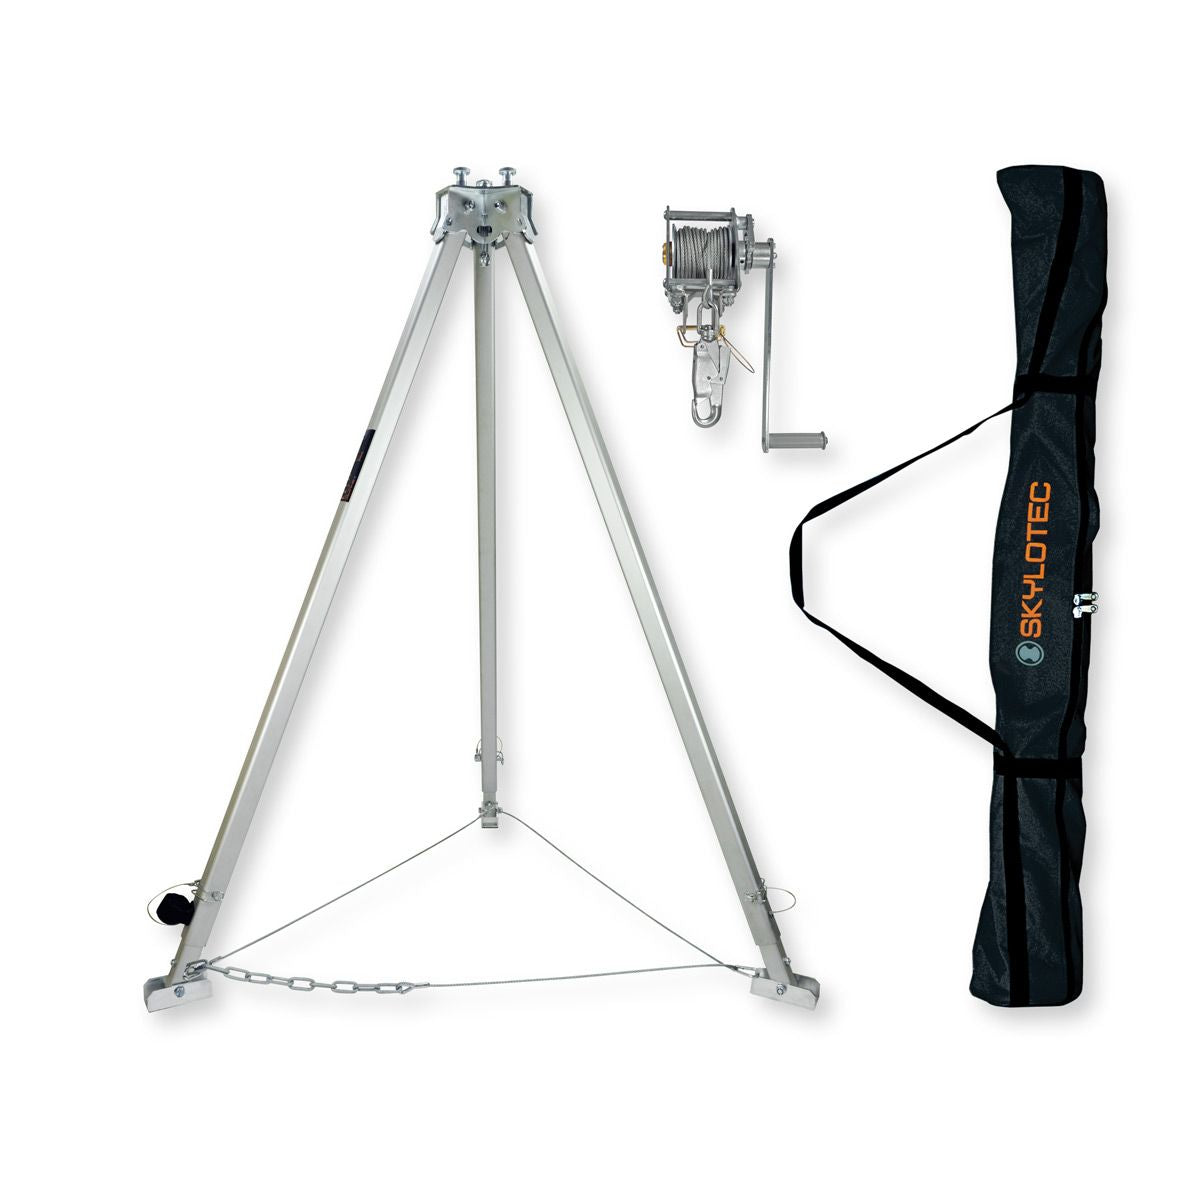 Skylotec TRIBOC EQUIPPED tripod kit with winch & bag